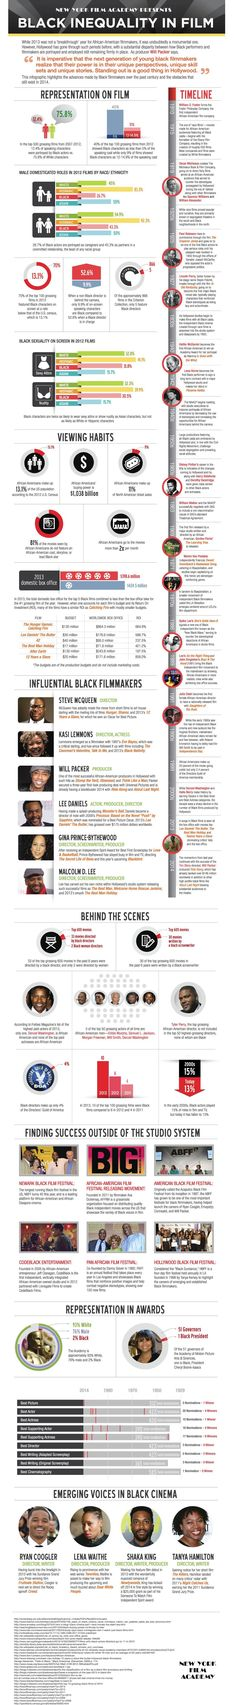 Black Inequality In Film #Infographic